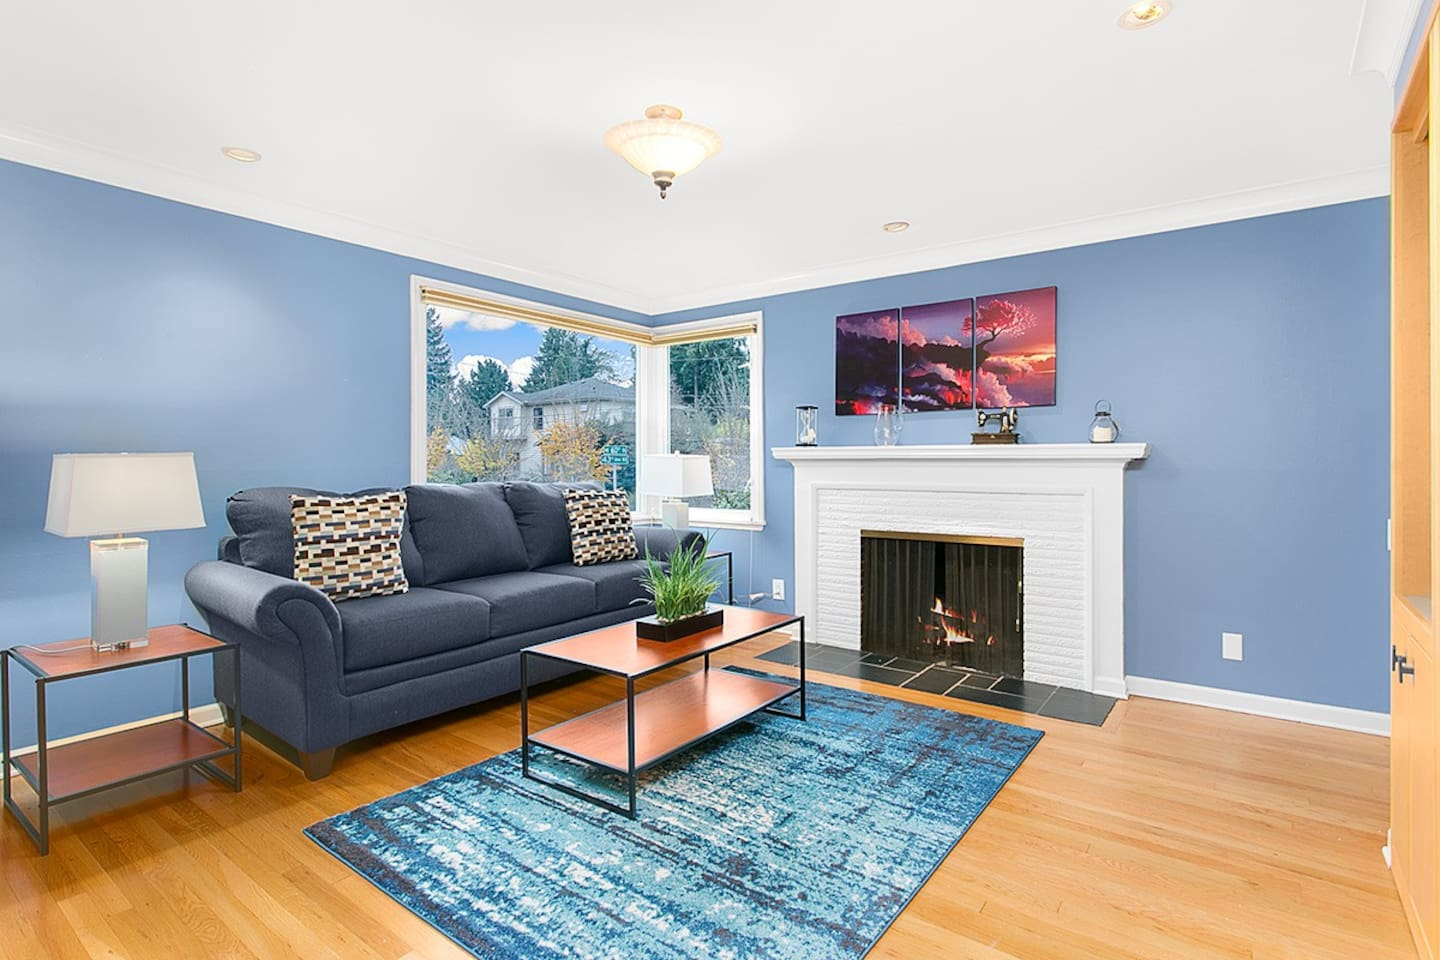 Bright and spacious living area, with a brick fire place.